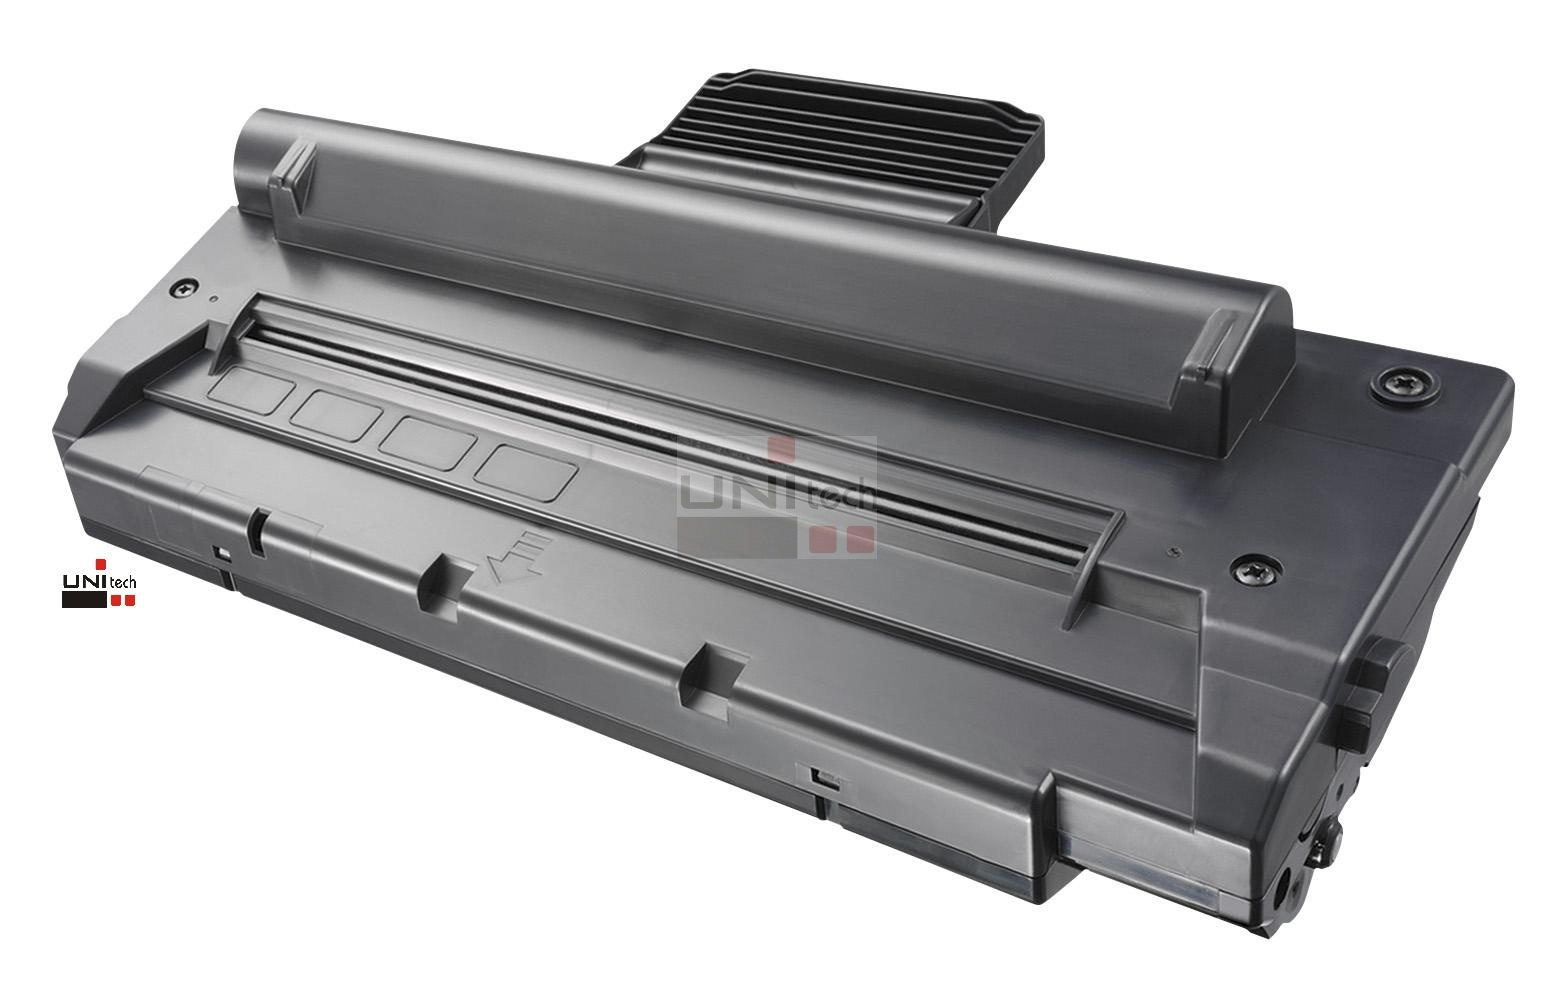 Toner 013R00607 cartridge ? INTENSO XEROX Workcentre PE114